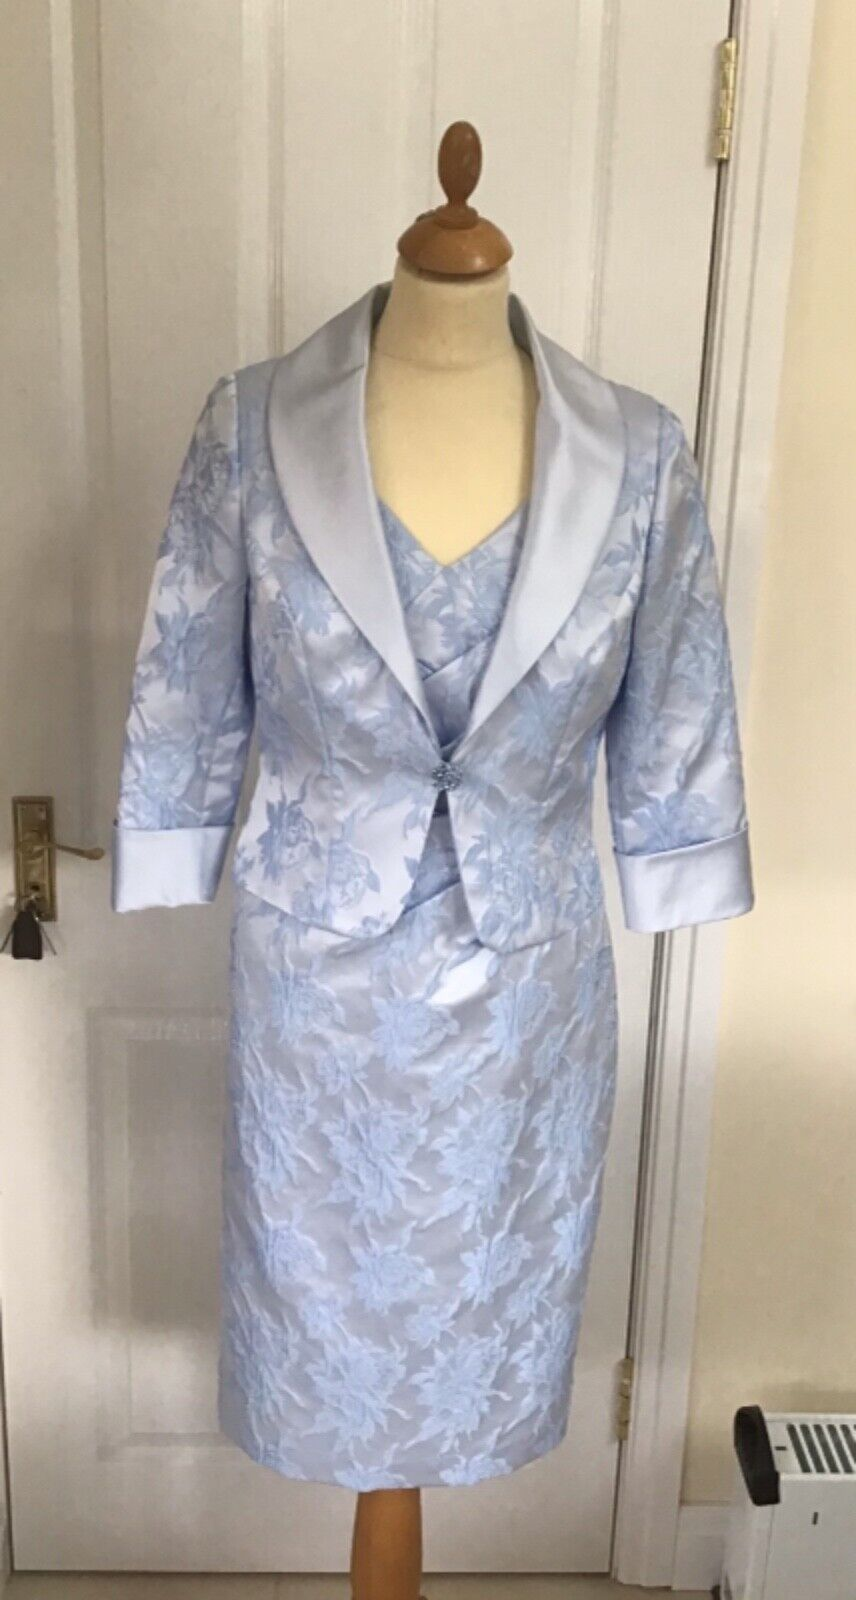 Condici 11293 Size 8 dress and jacket BNWT RRP now only